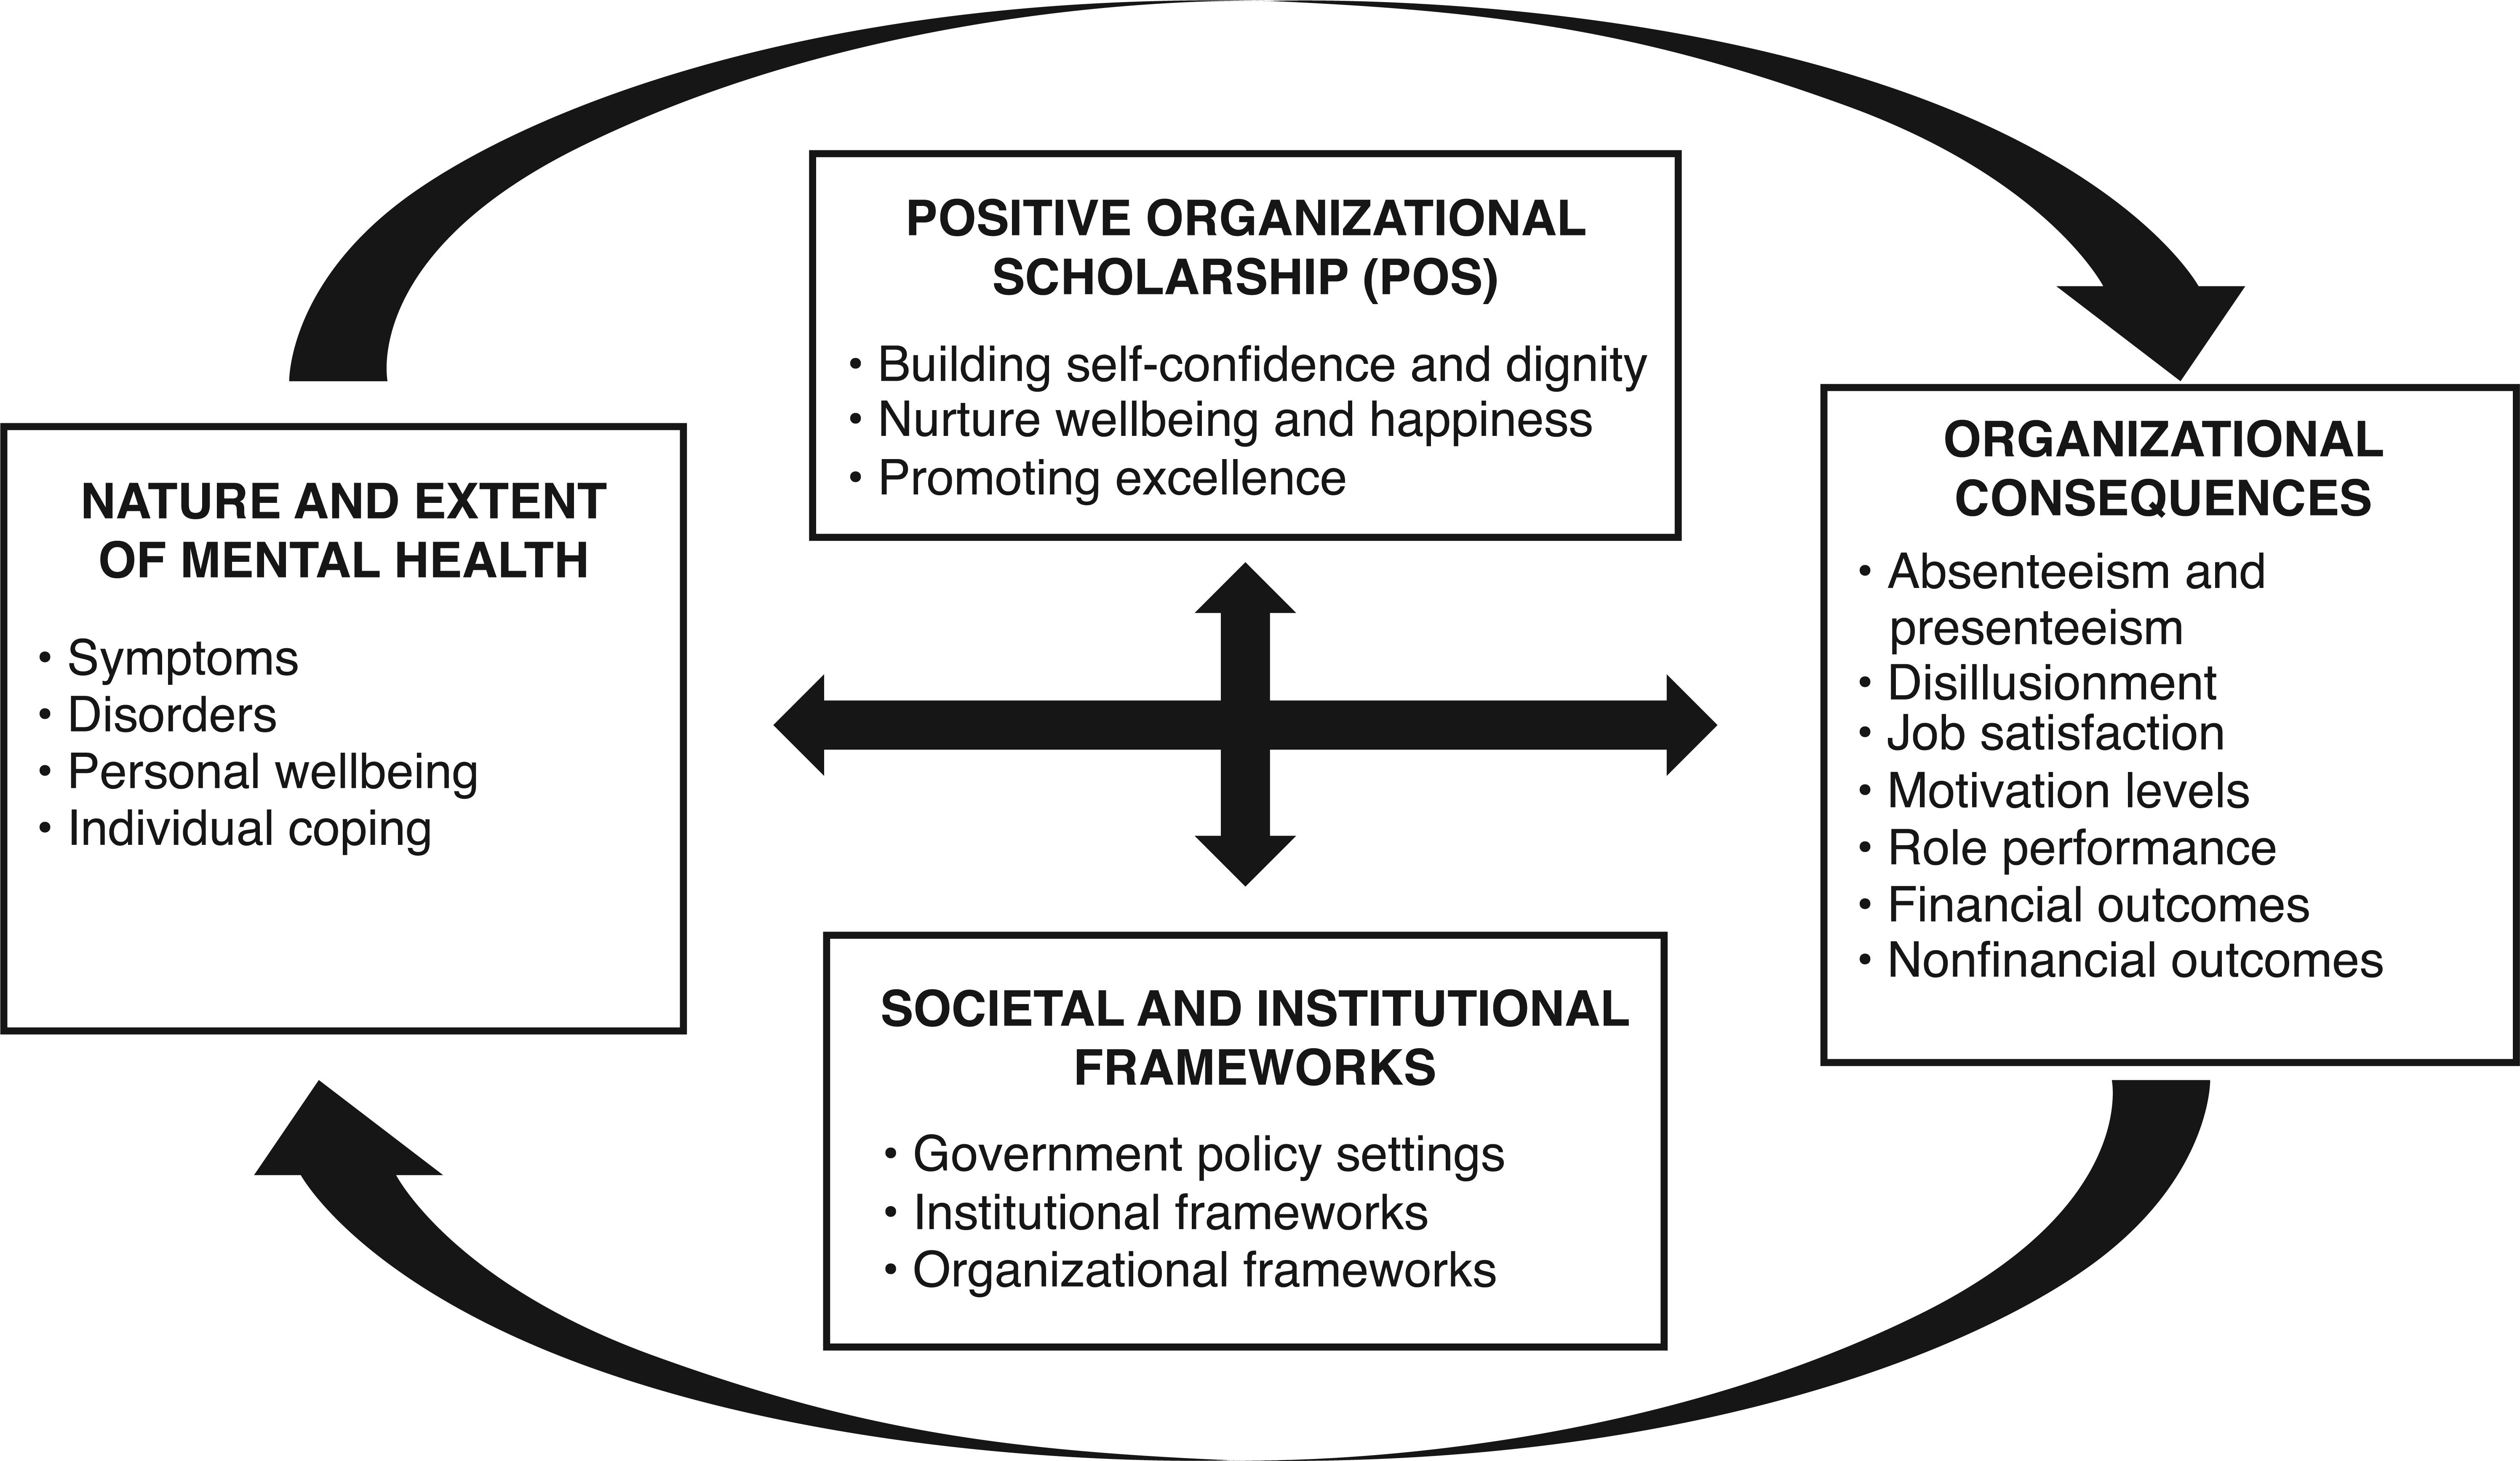 Interaction of Nature and Extent of Mental Health, Organizational Consequences, Positive Organizational Scholarship, and Societal and Institutional Frameworks